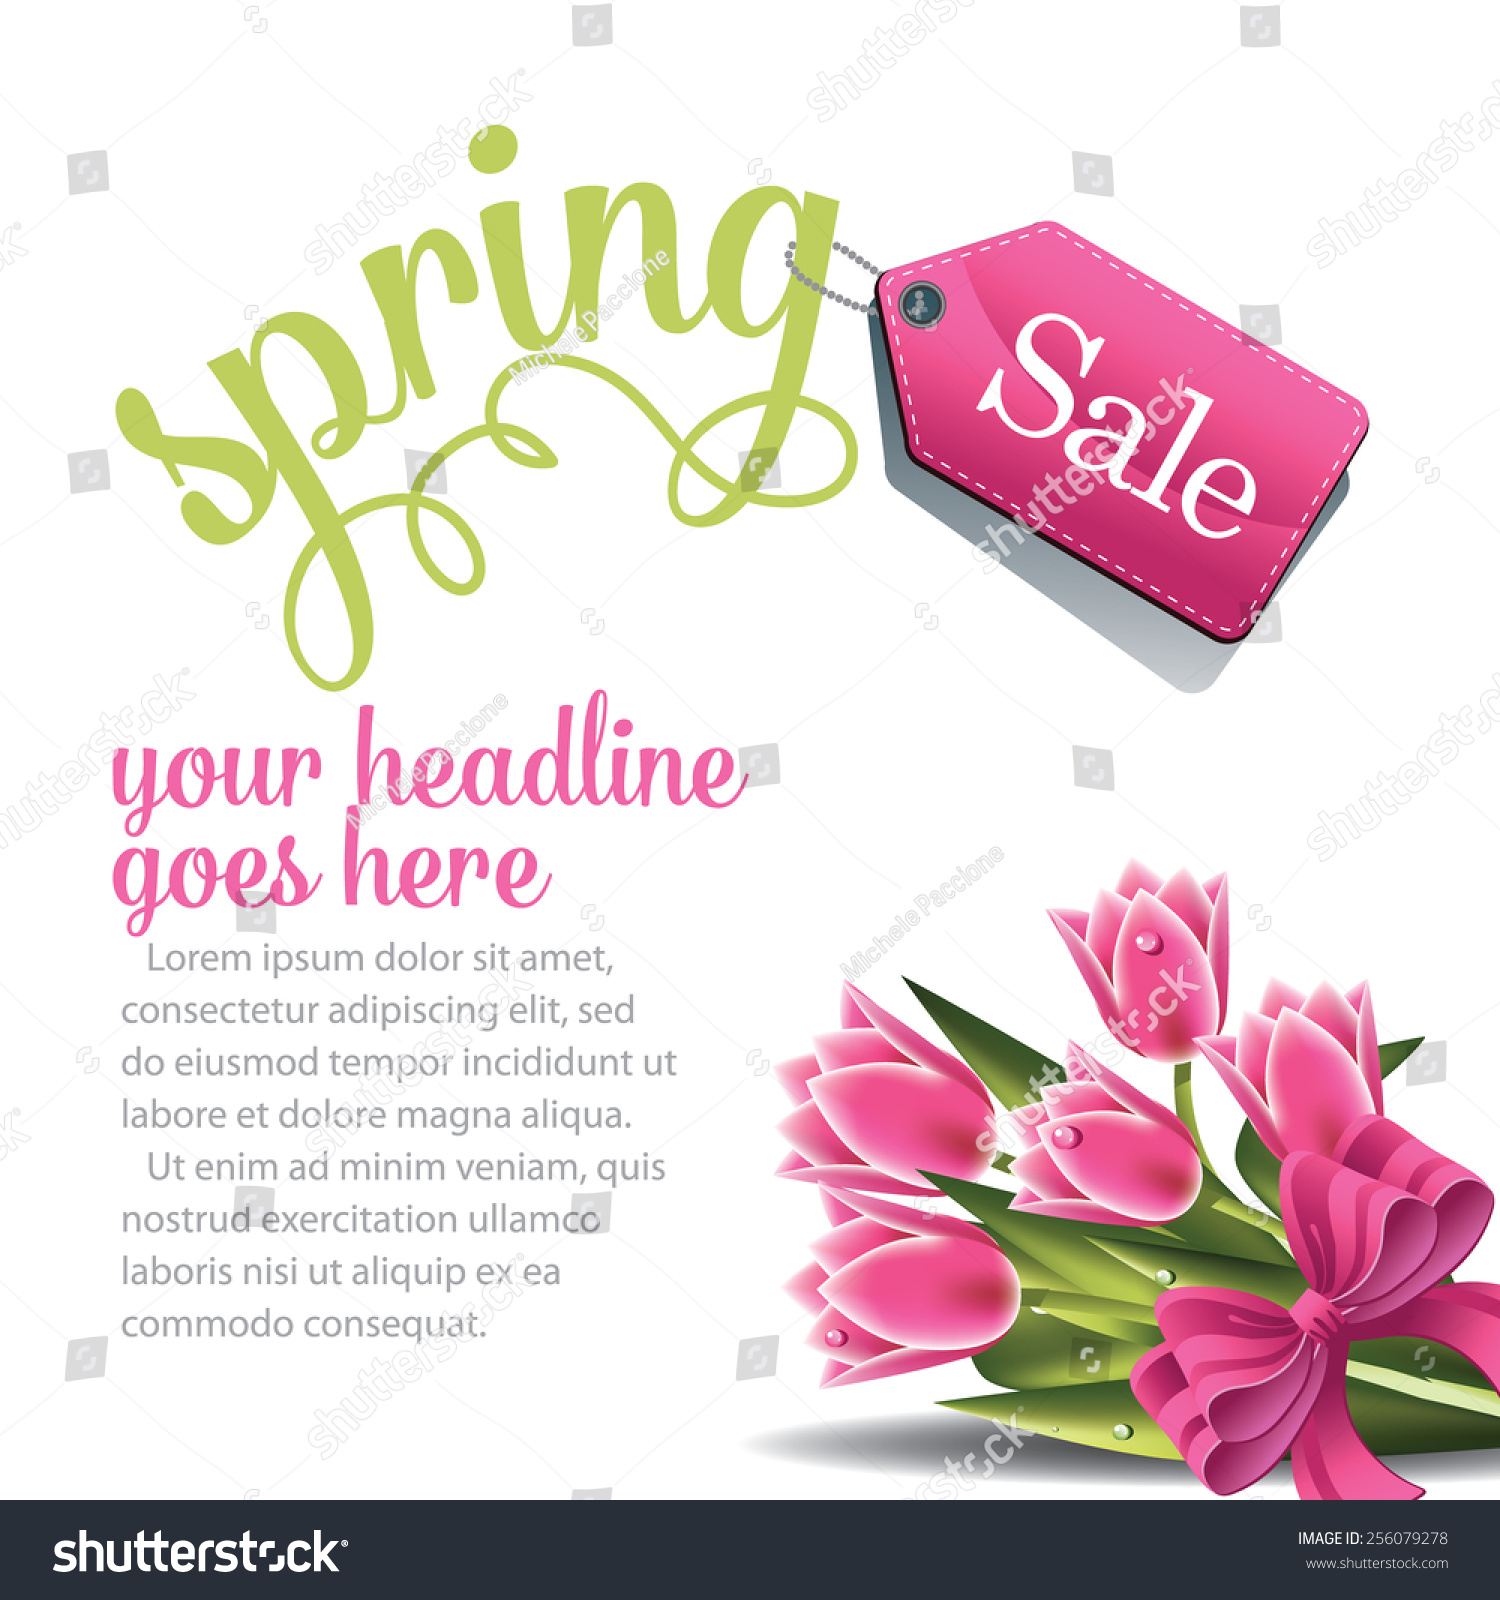 spring advertising background template royalty stock spring advertising background template royalty stock illustration for greeting card ad promotion